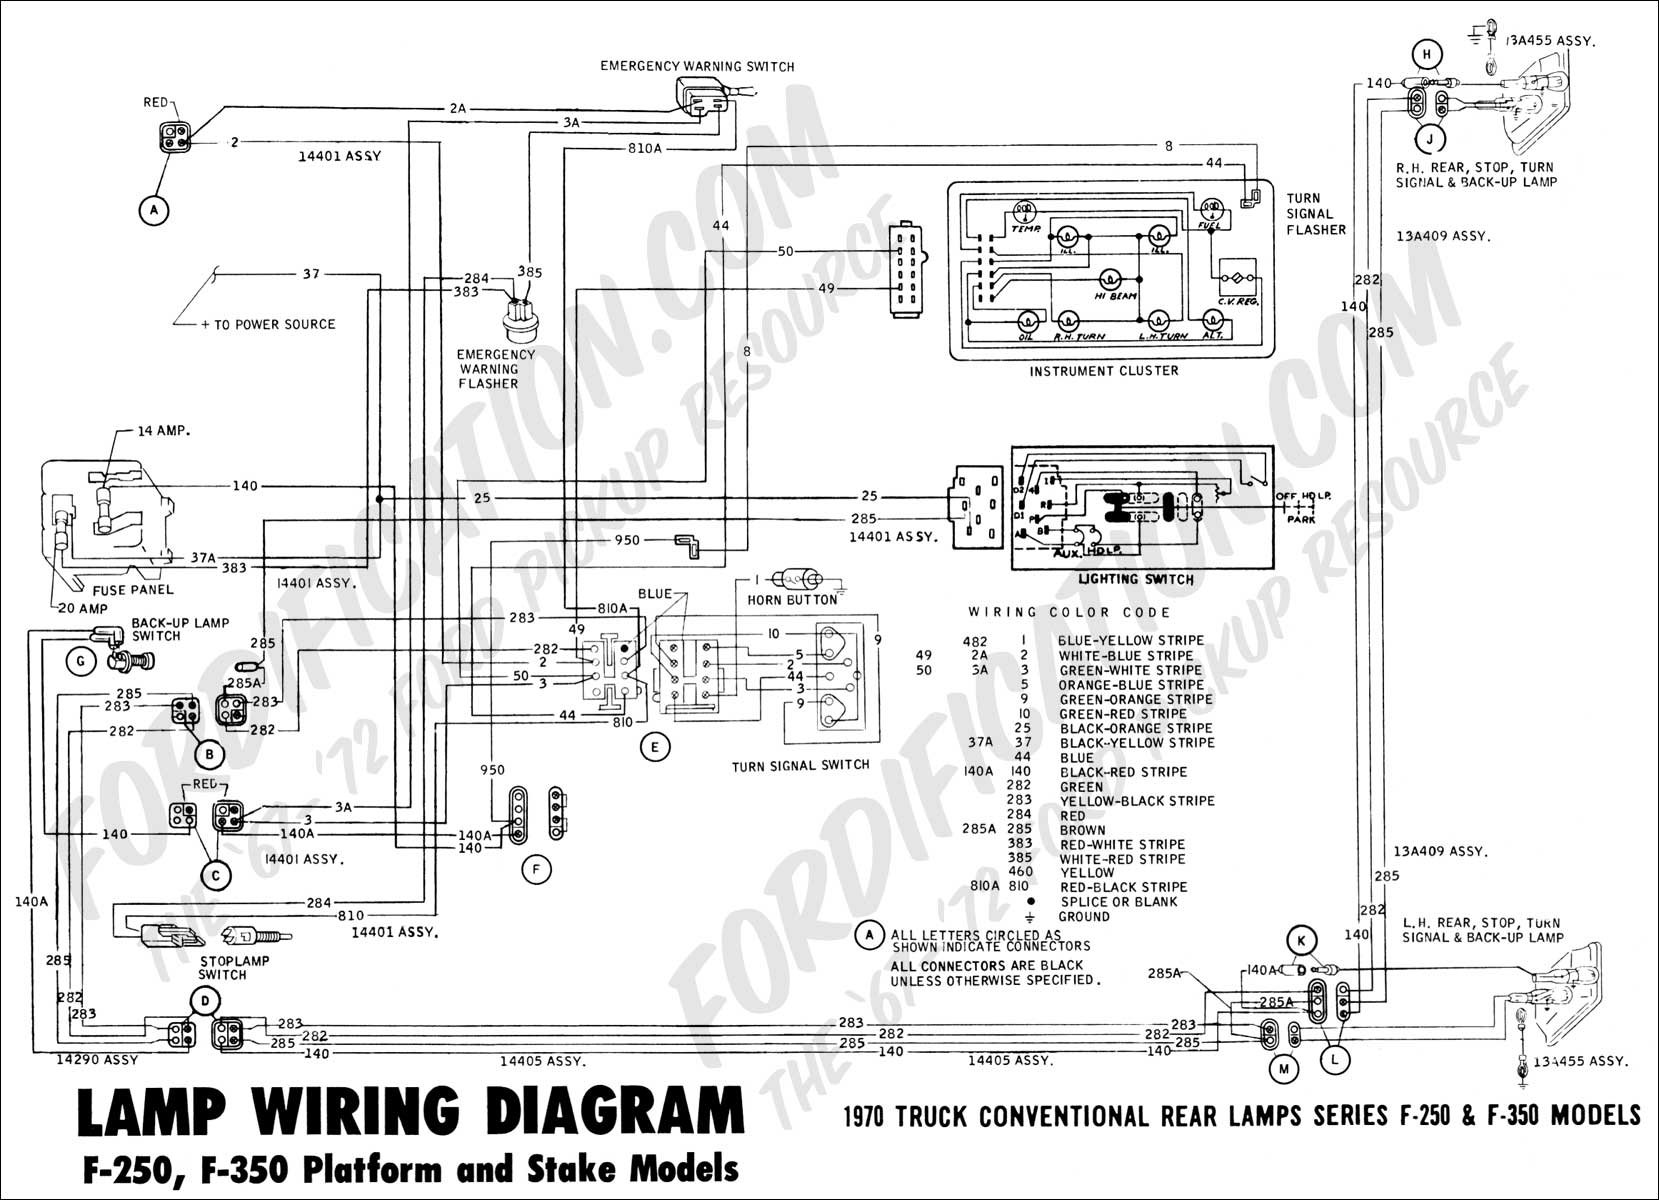 87 Ford F250 Wiring Diagram 1987 Ranger Fuse Box Schematic 2019 Truck Technical Drawings And Schematics Section H